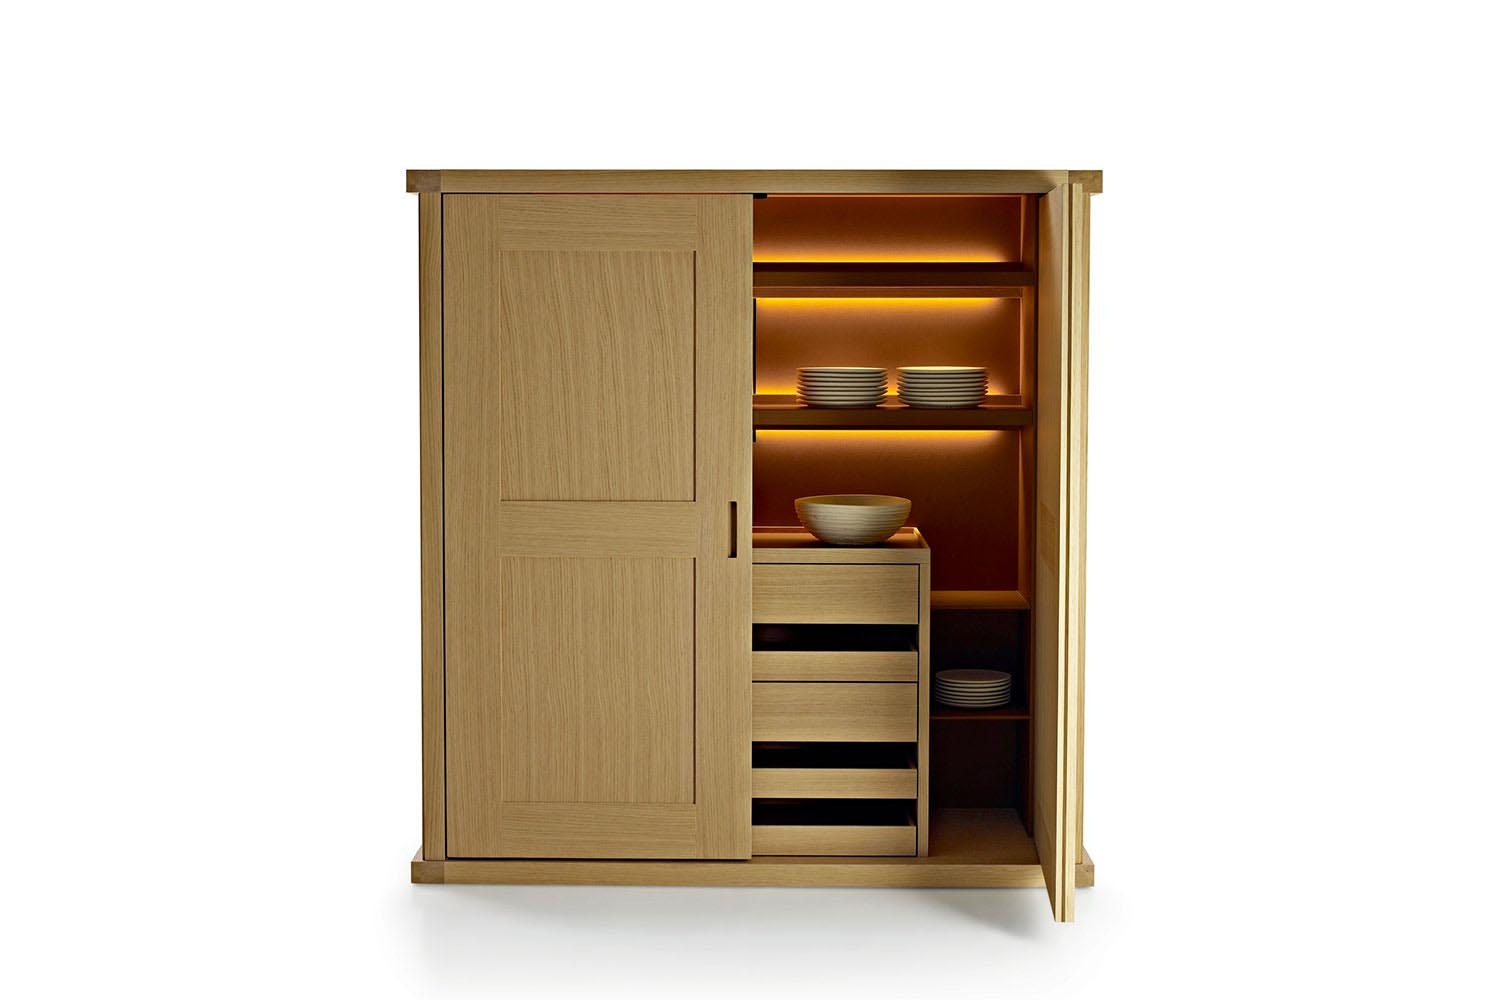 Convivium Storage Unit by Antonio Citterio for Maxalto